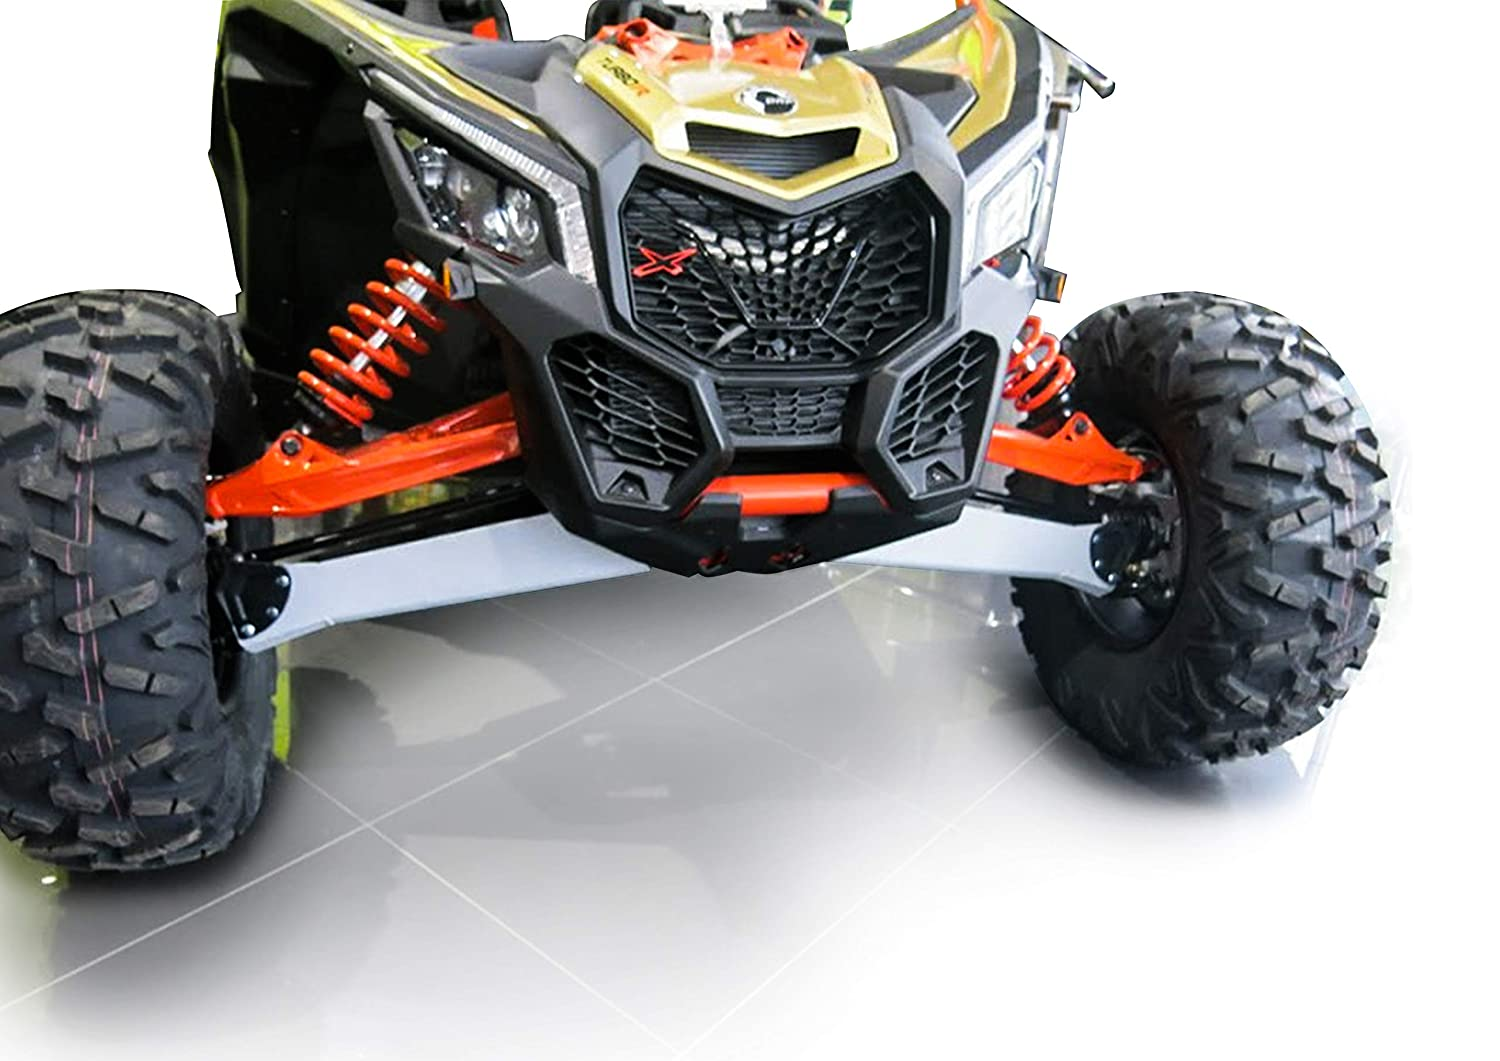 X3 MAX//X RS//X RC TURBO R from 2017 to 2019 Rival Front A arm guards for Can-Am SSV Maverick X3 pair